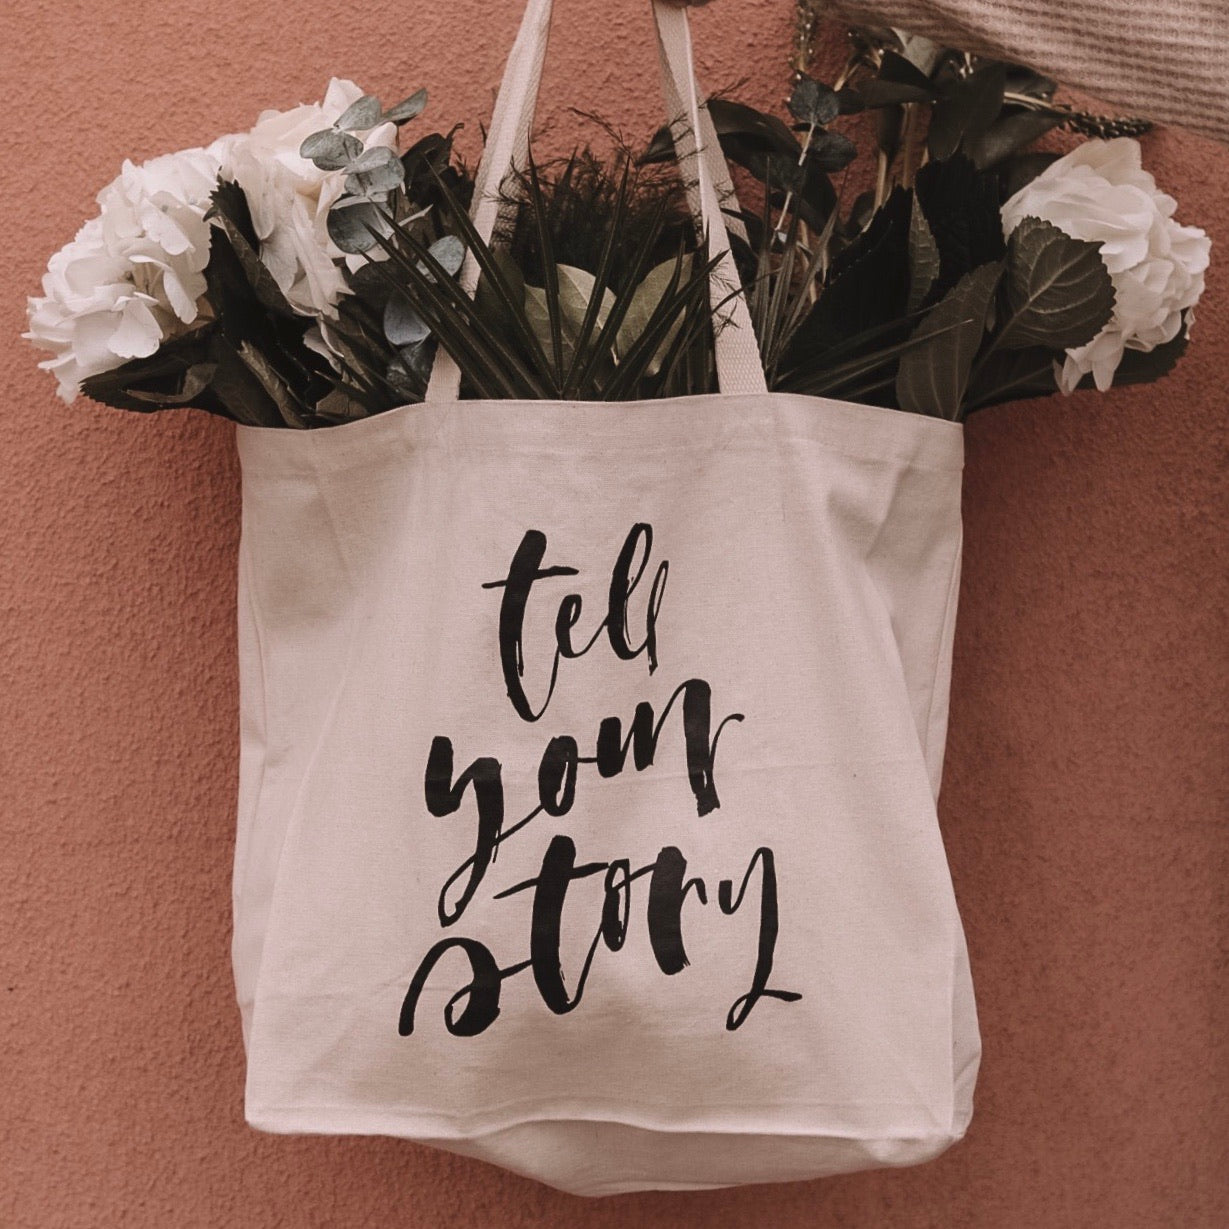 'Tell Your Story' Canvas Tote Bag